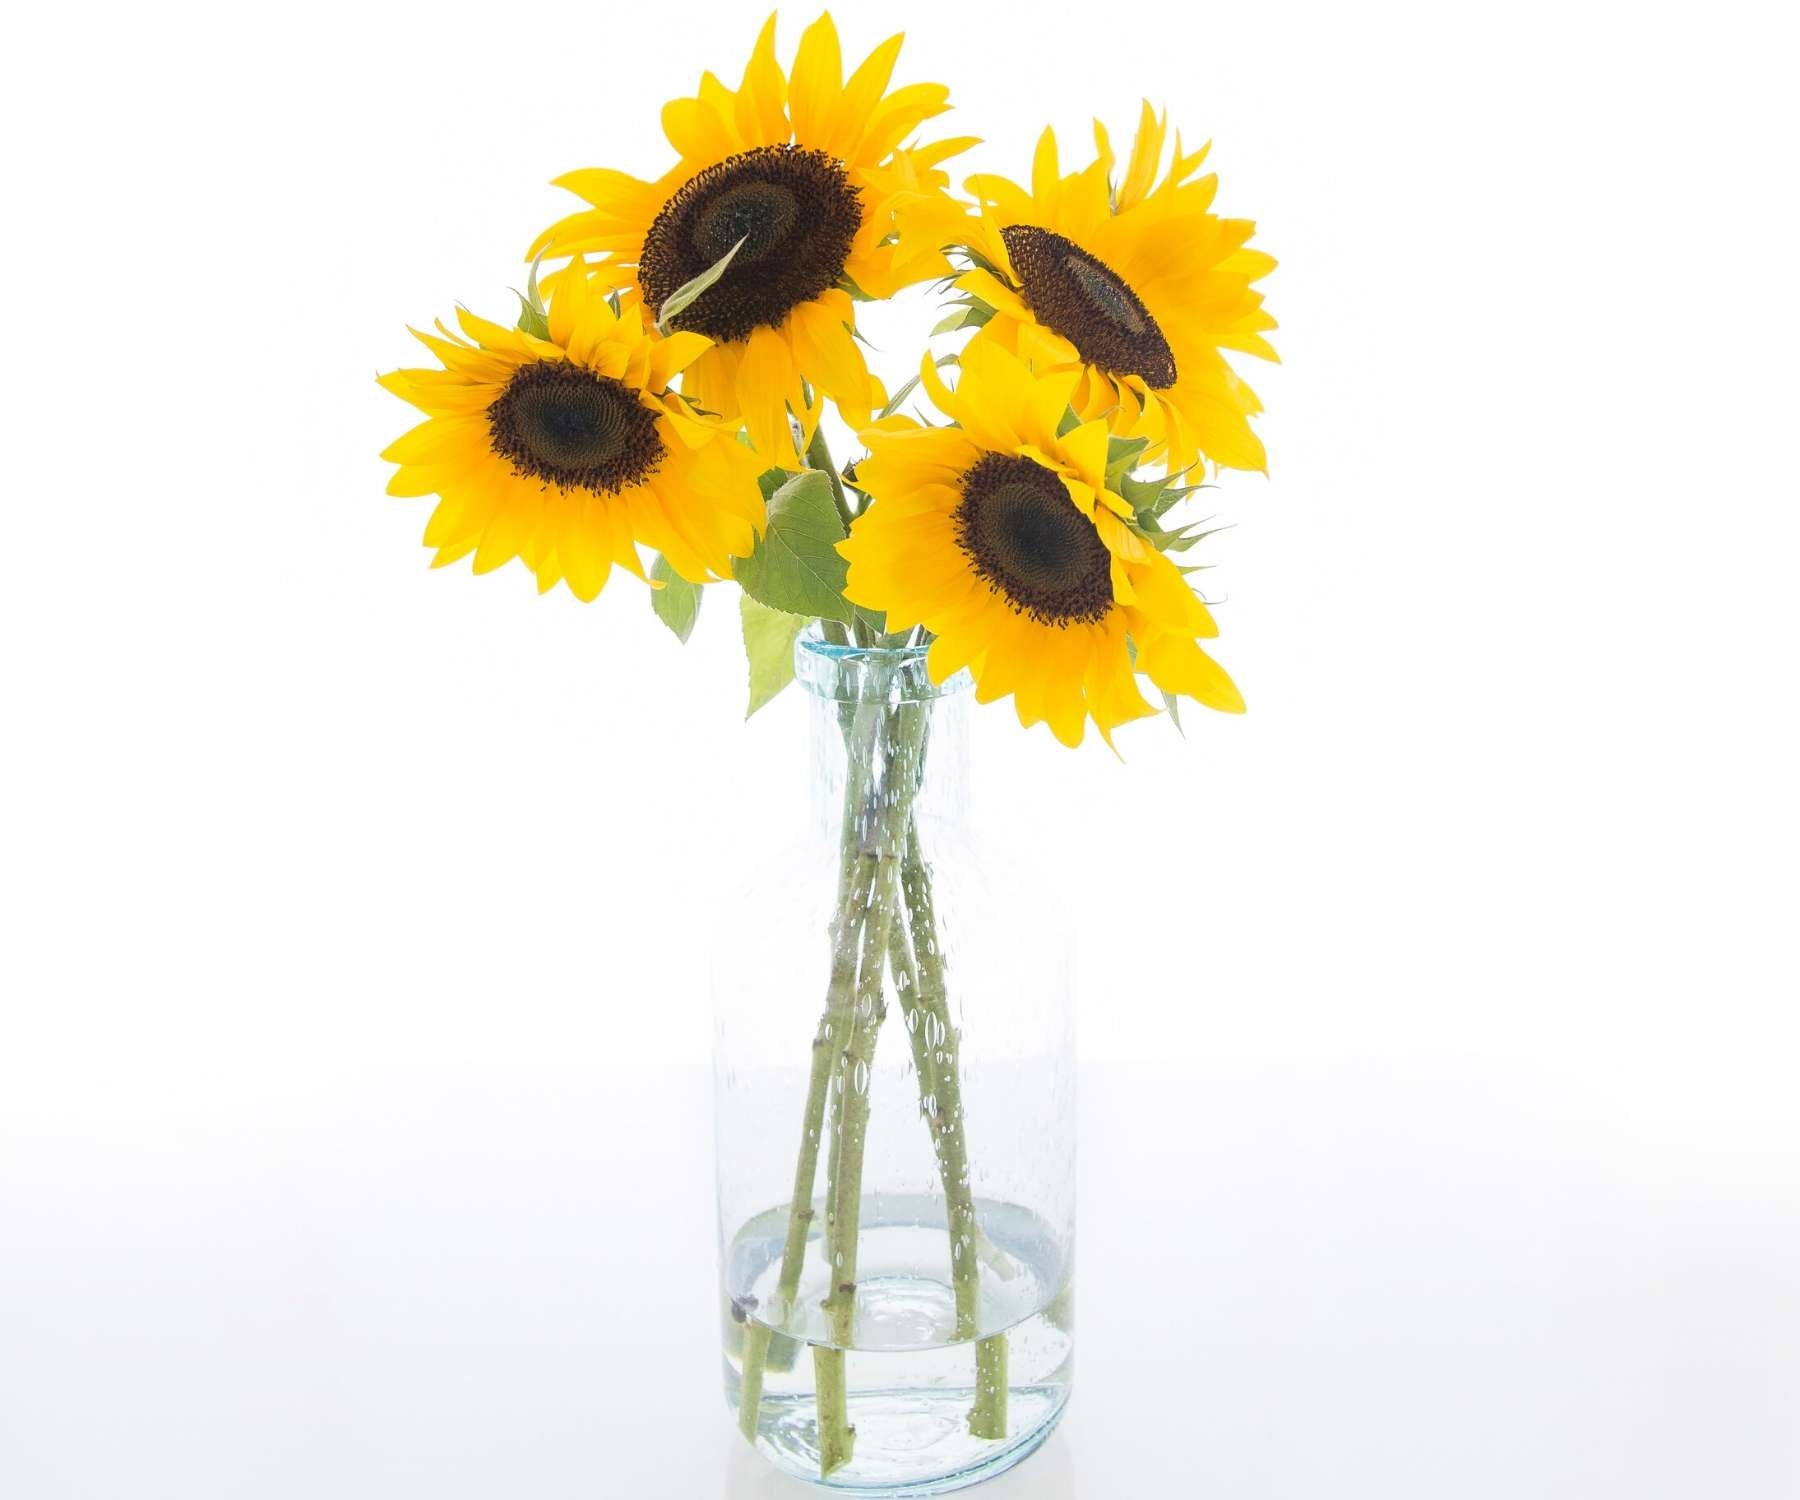 glass vase with sunflowers